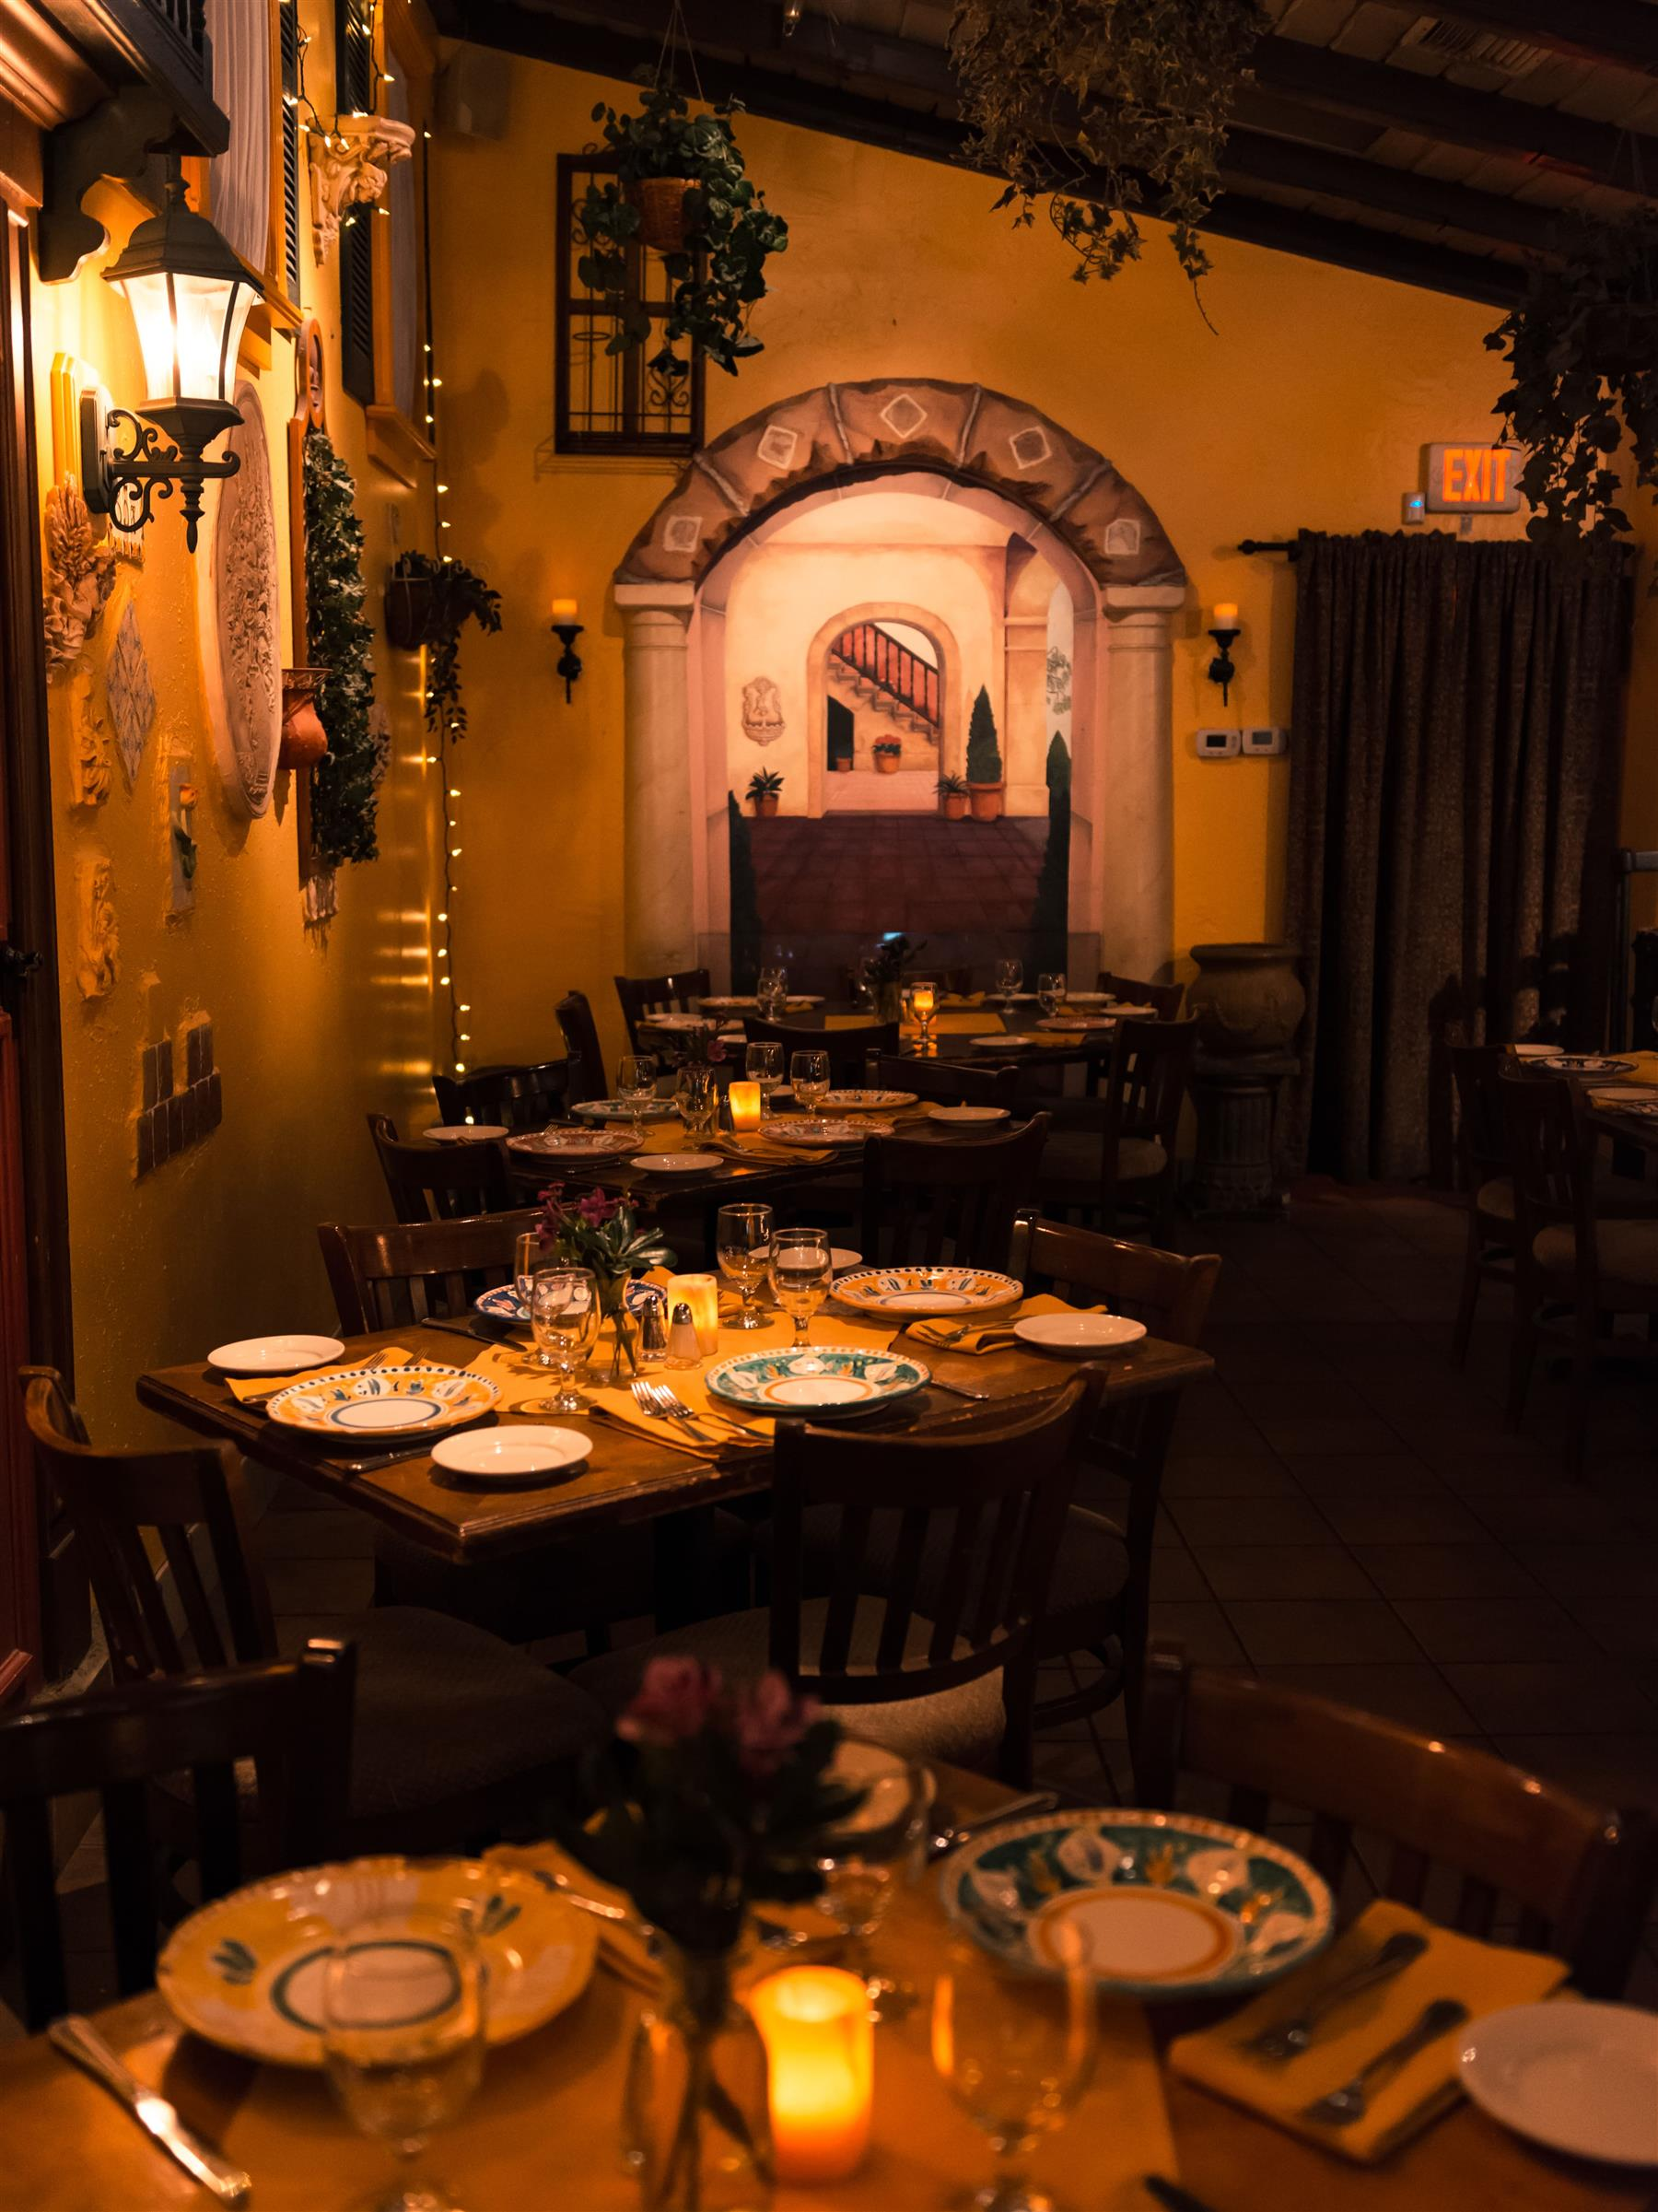 Wooden tables in a dim lit room with yellow stucco walls.